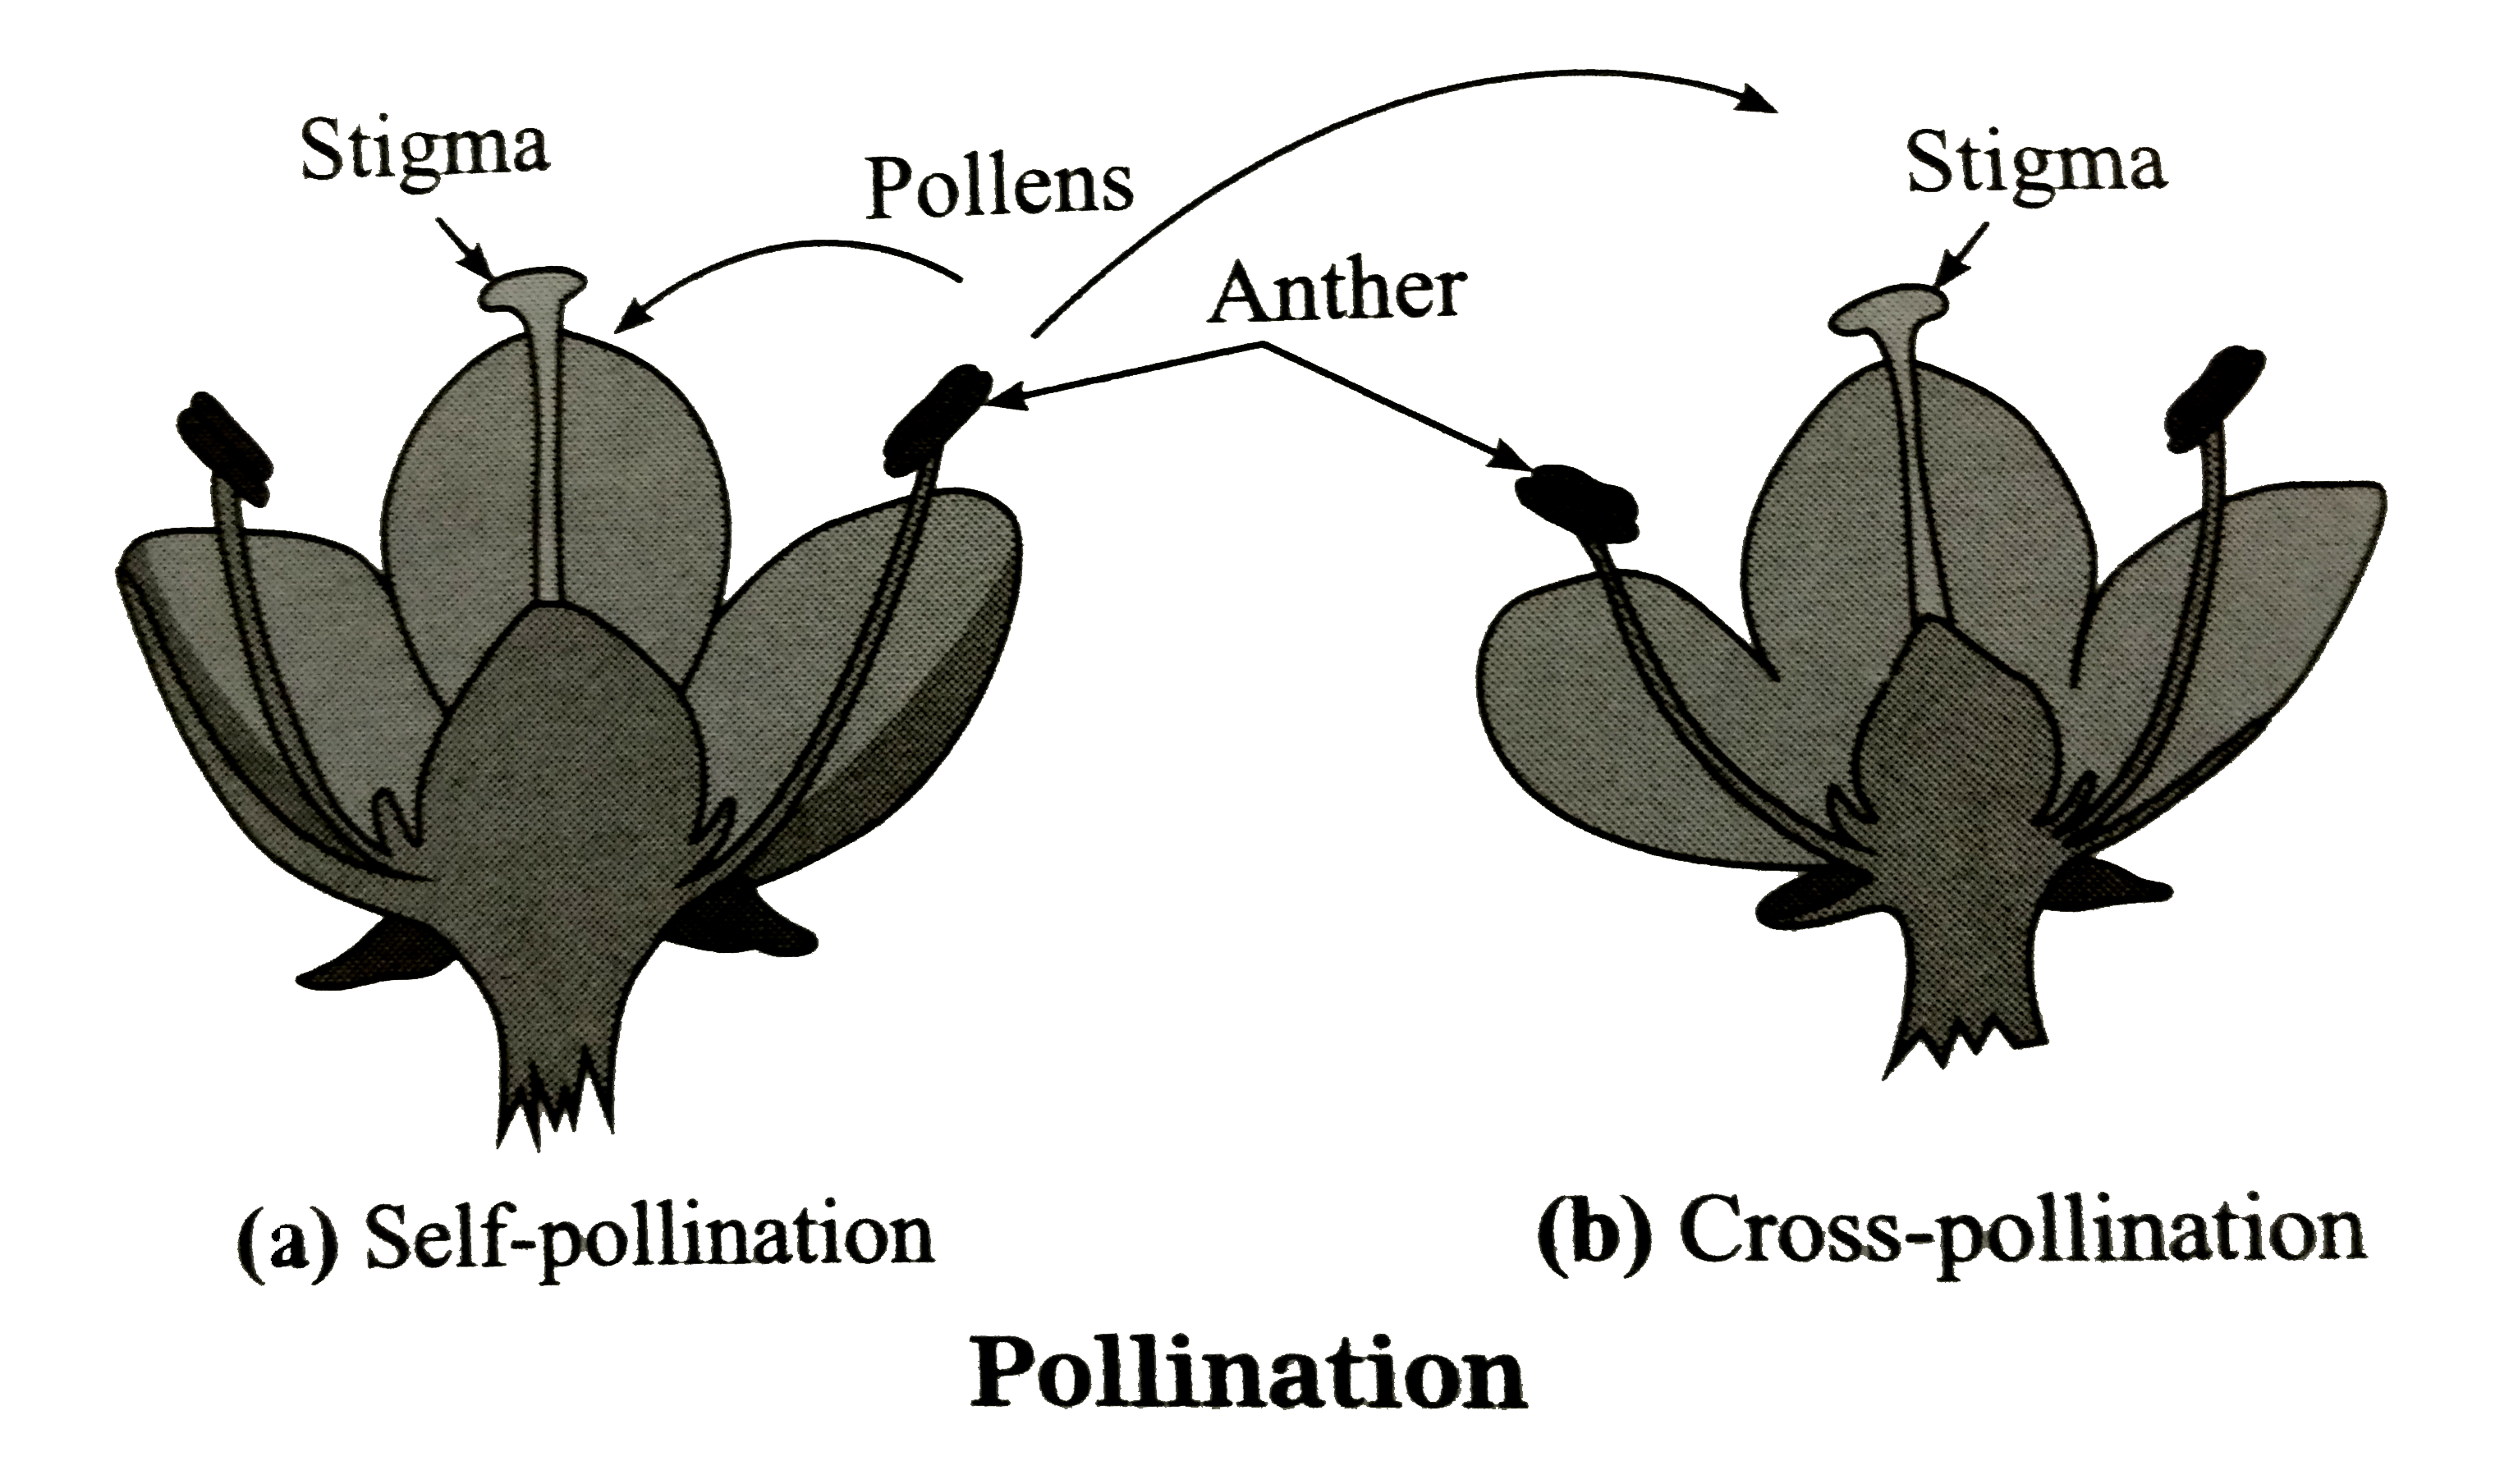 Sketch And Label The Diagram Showing Self And Cross Pollination